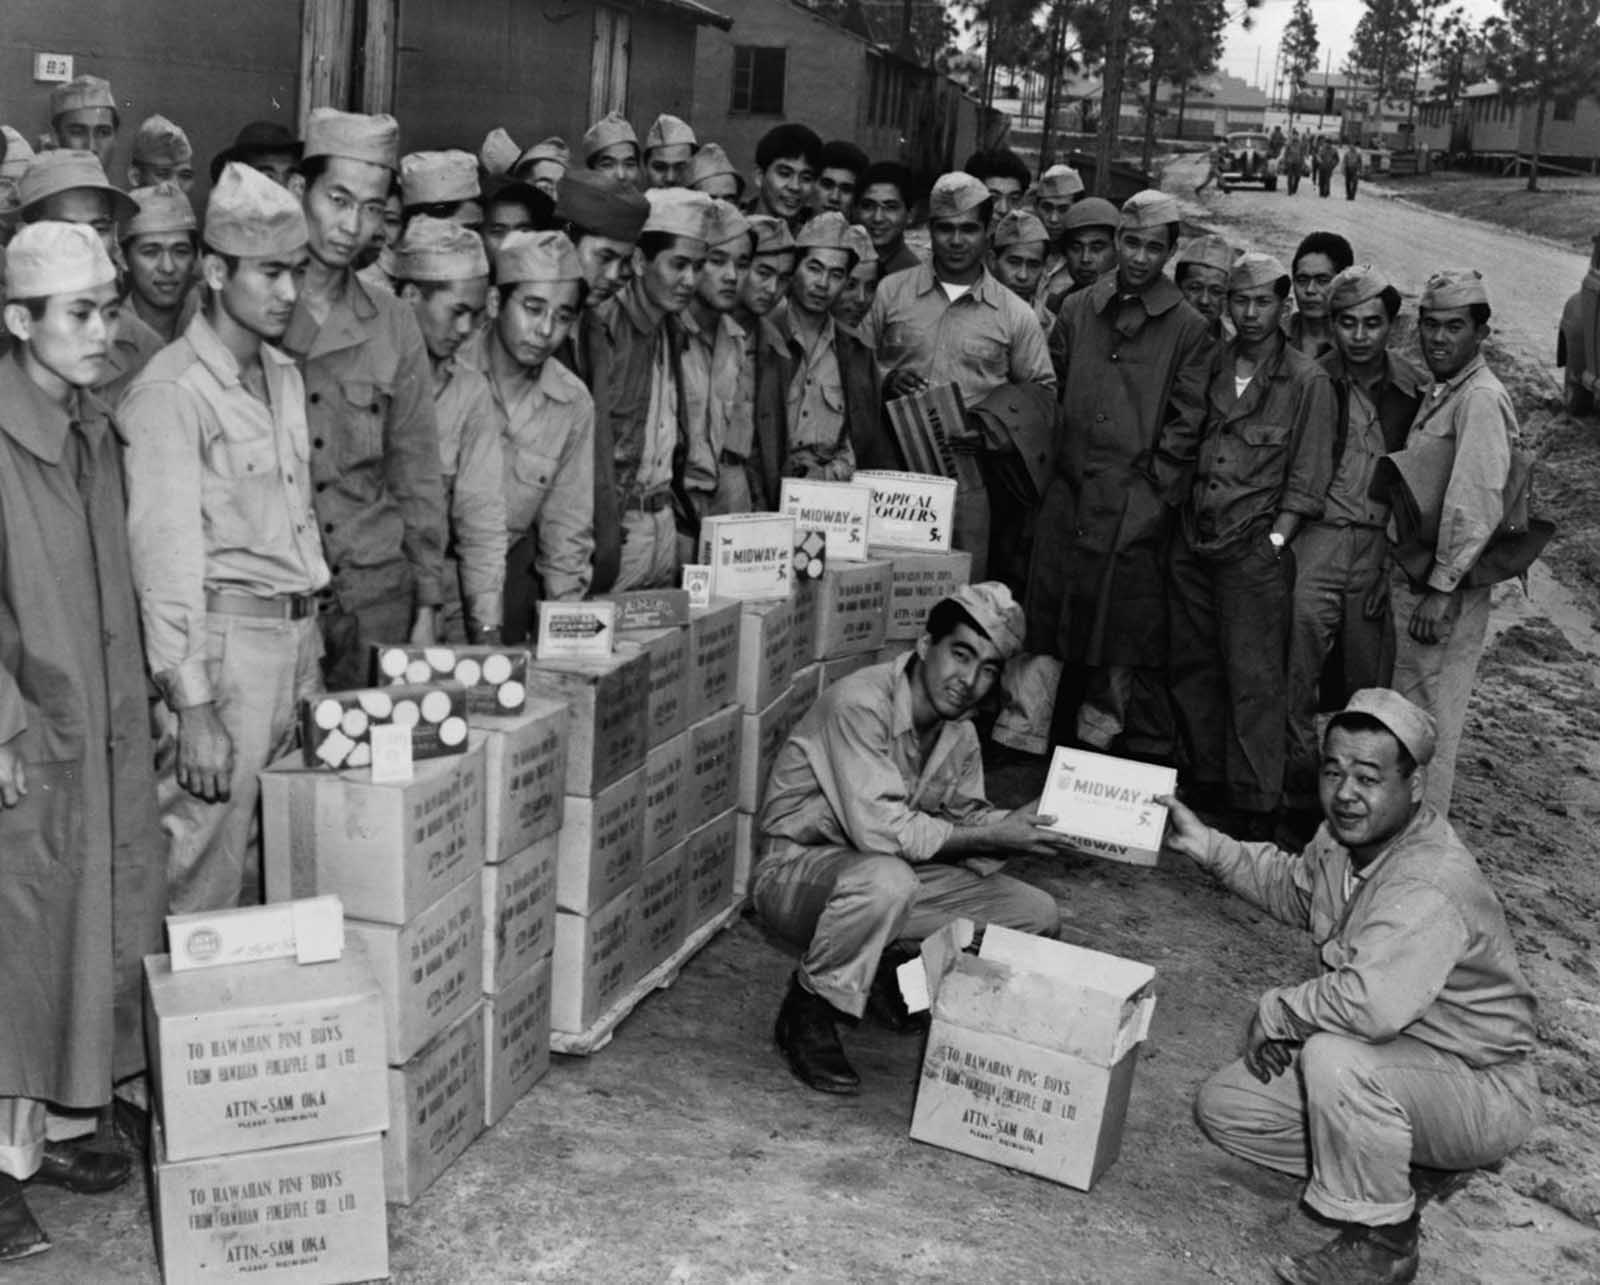 Soldiers distribute candies and cigarettes donated by a Hawaiian pineapple company. 1943.